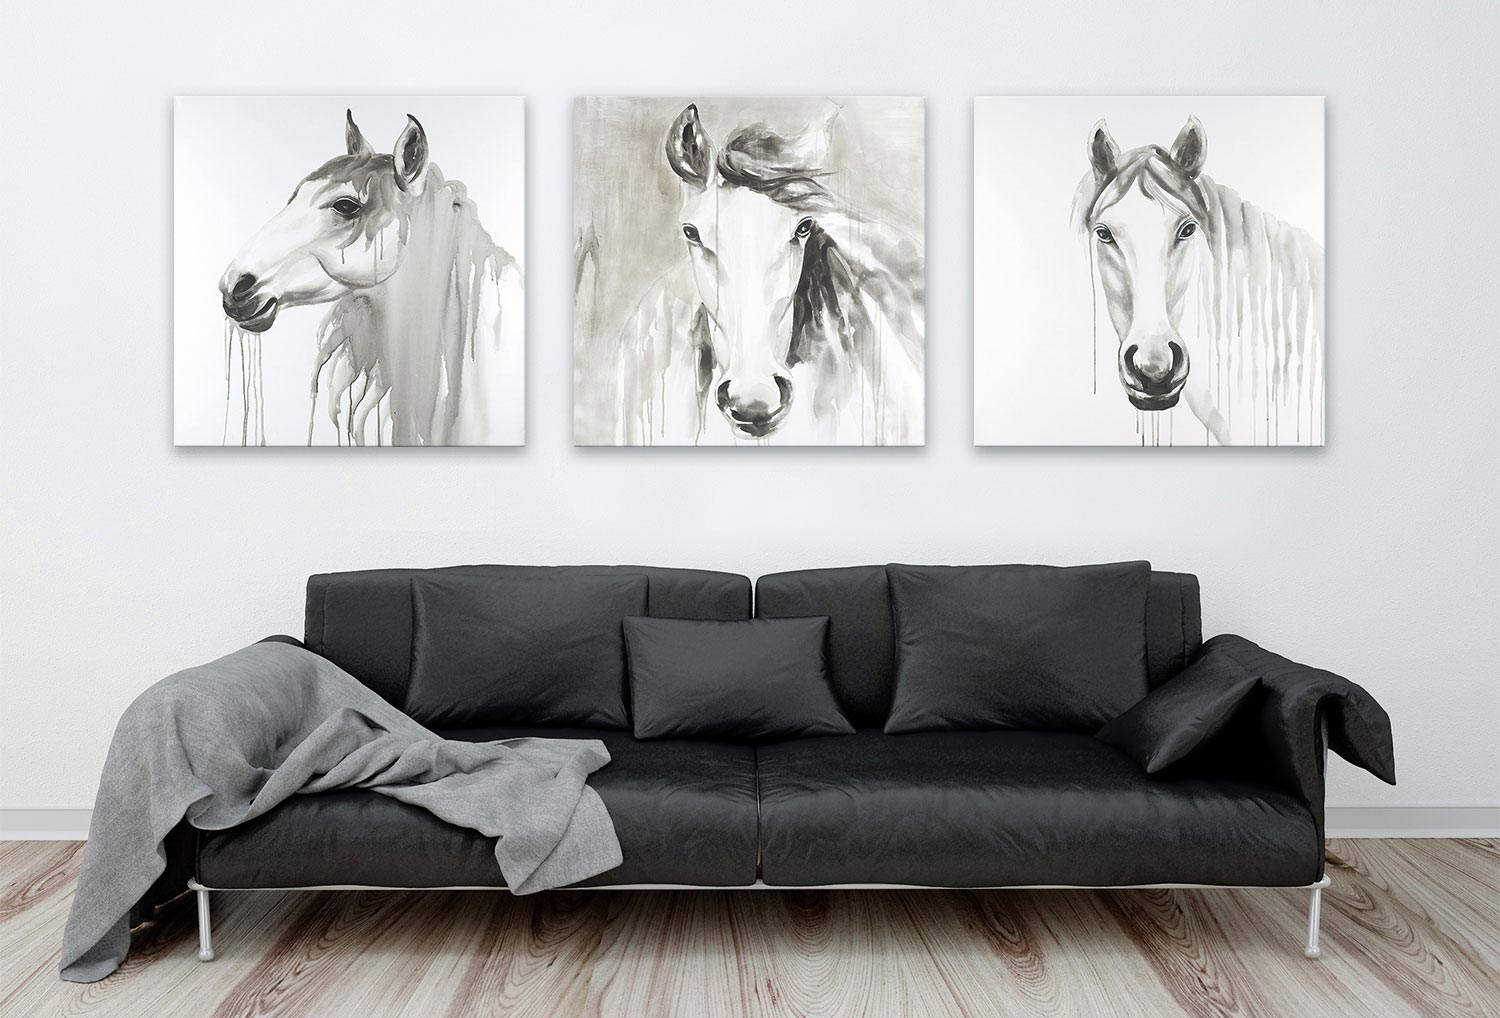 Abstract horses wall art livingroom decor